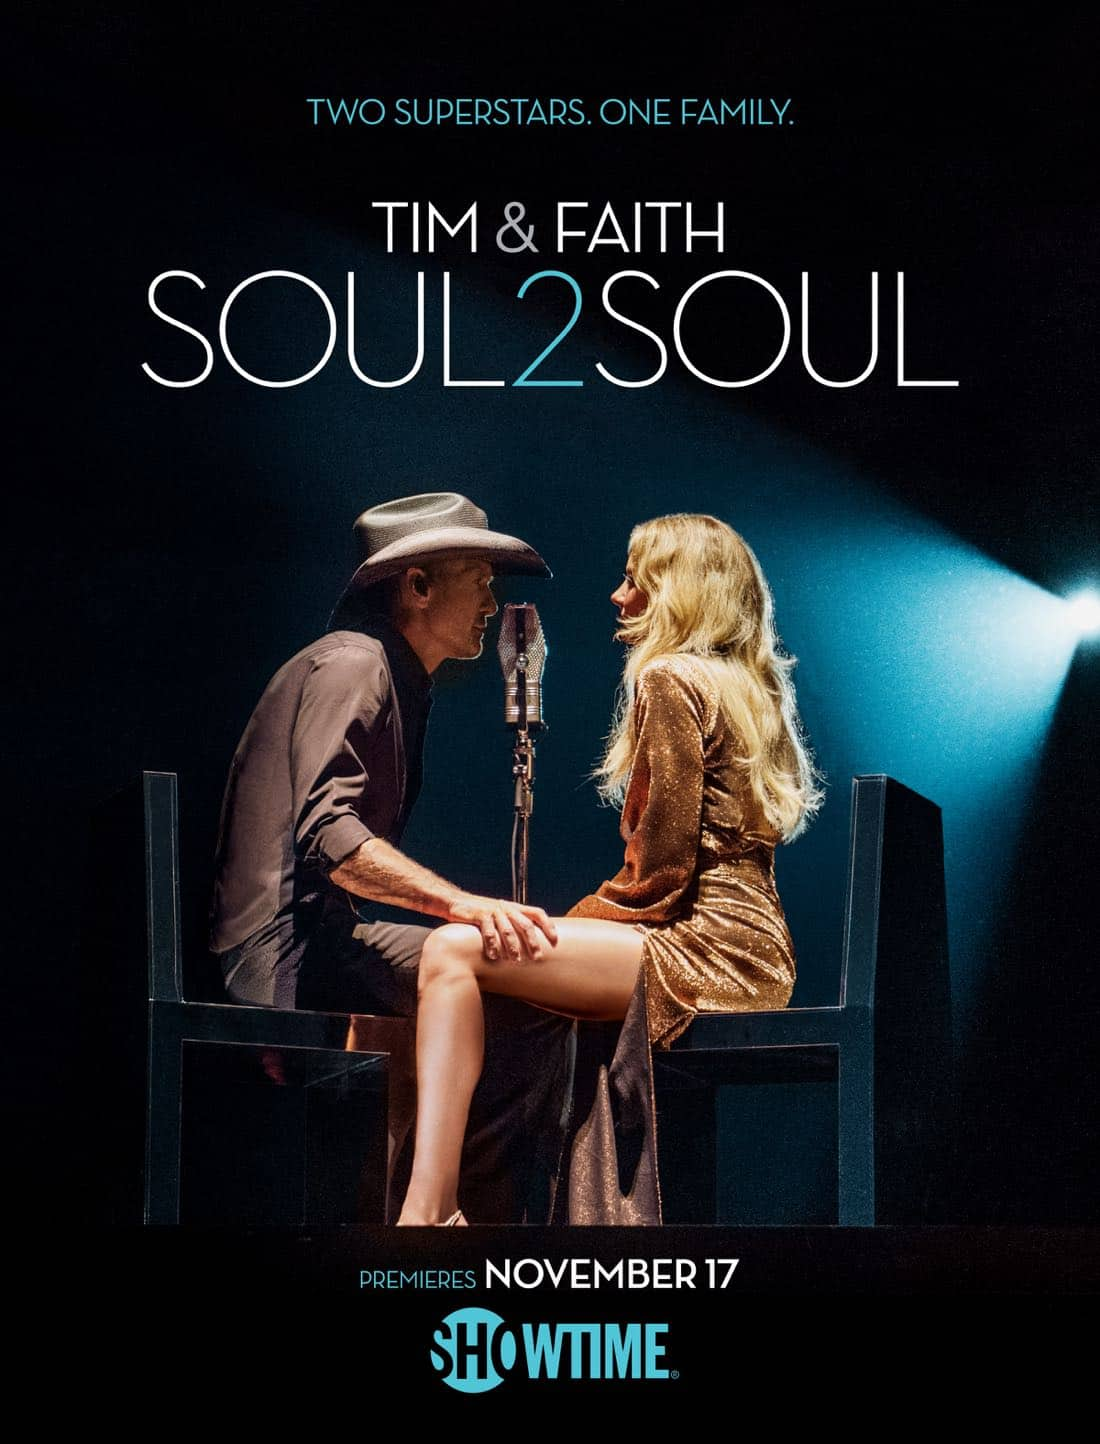 Soul2Soul-Tim-McGraw-and-Faith-Hill